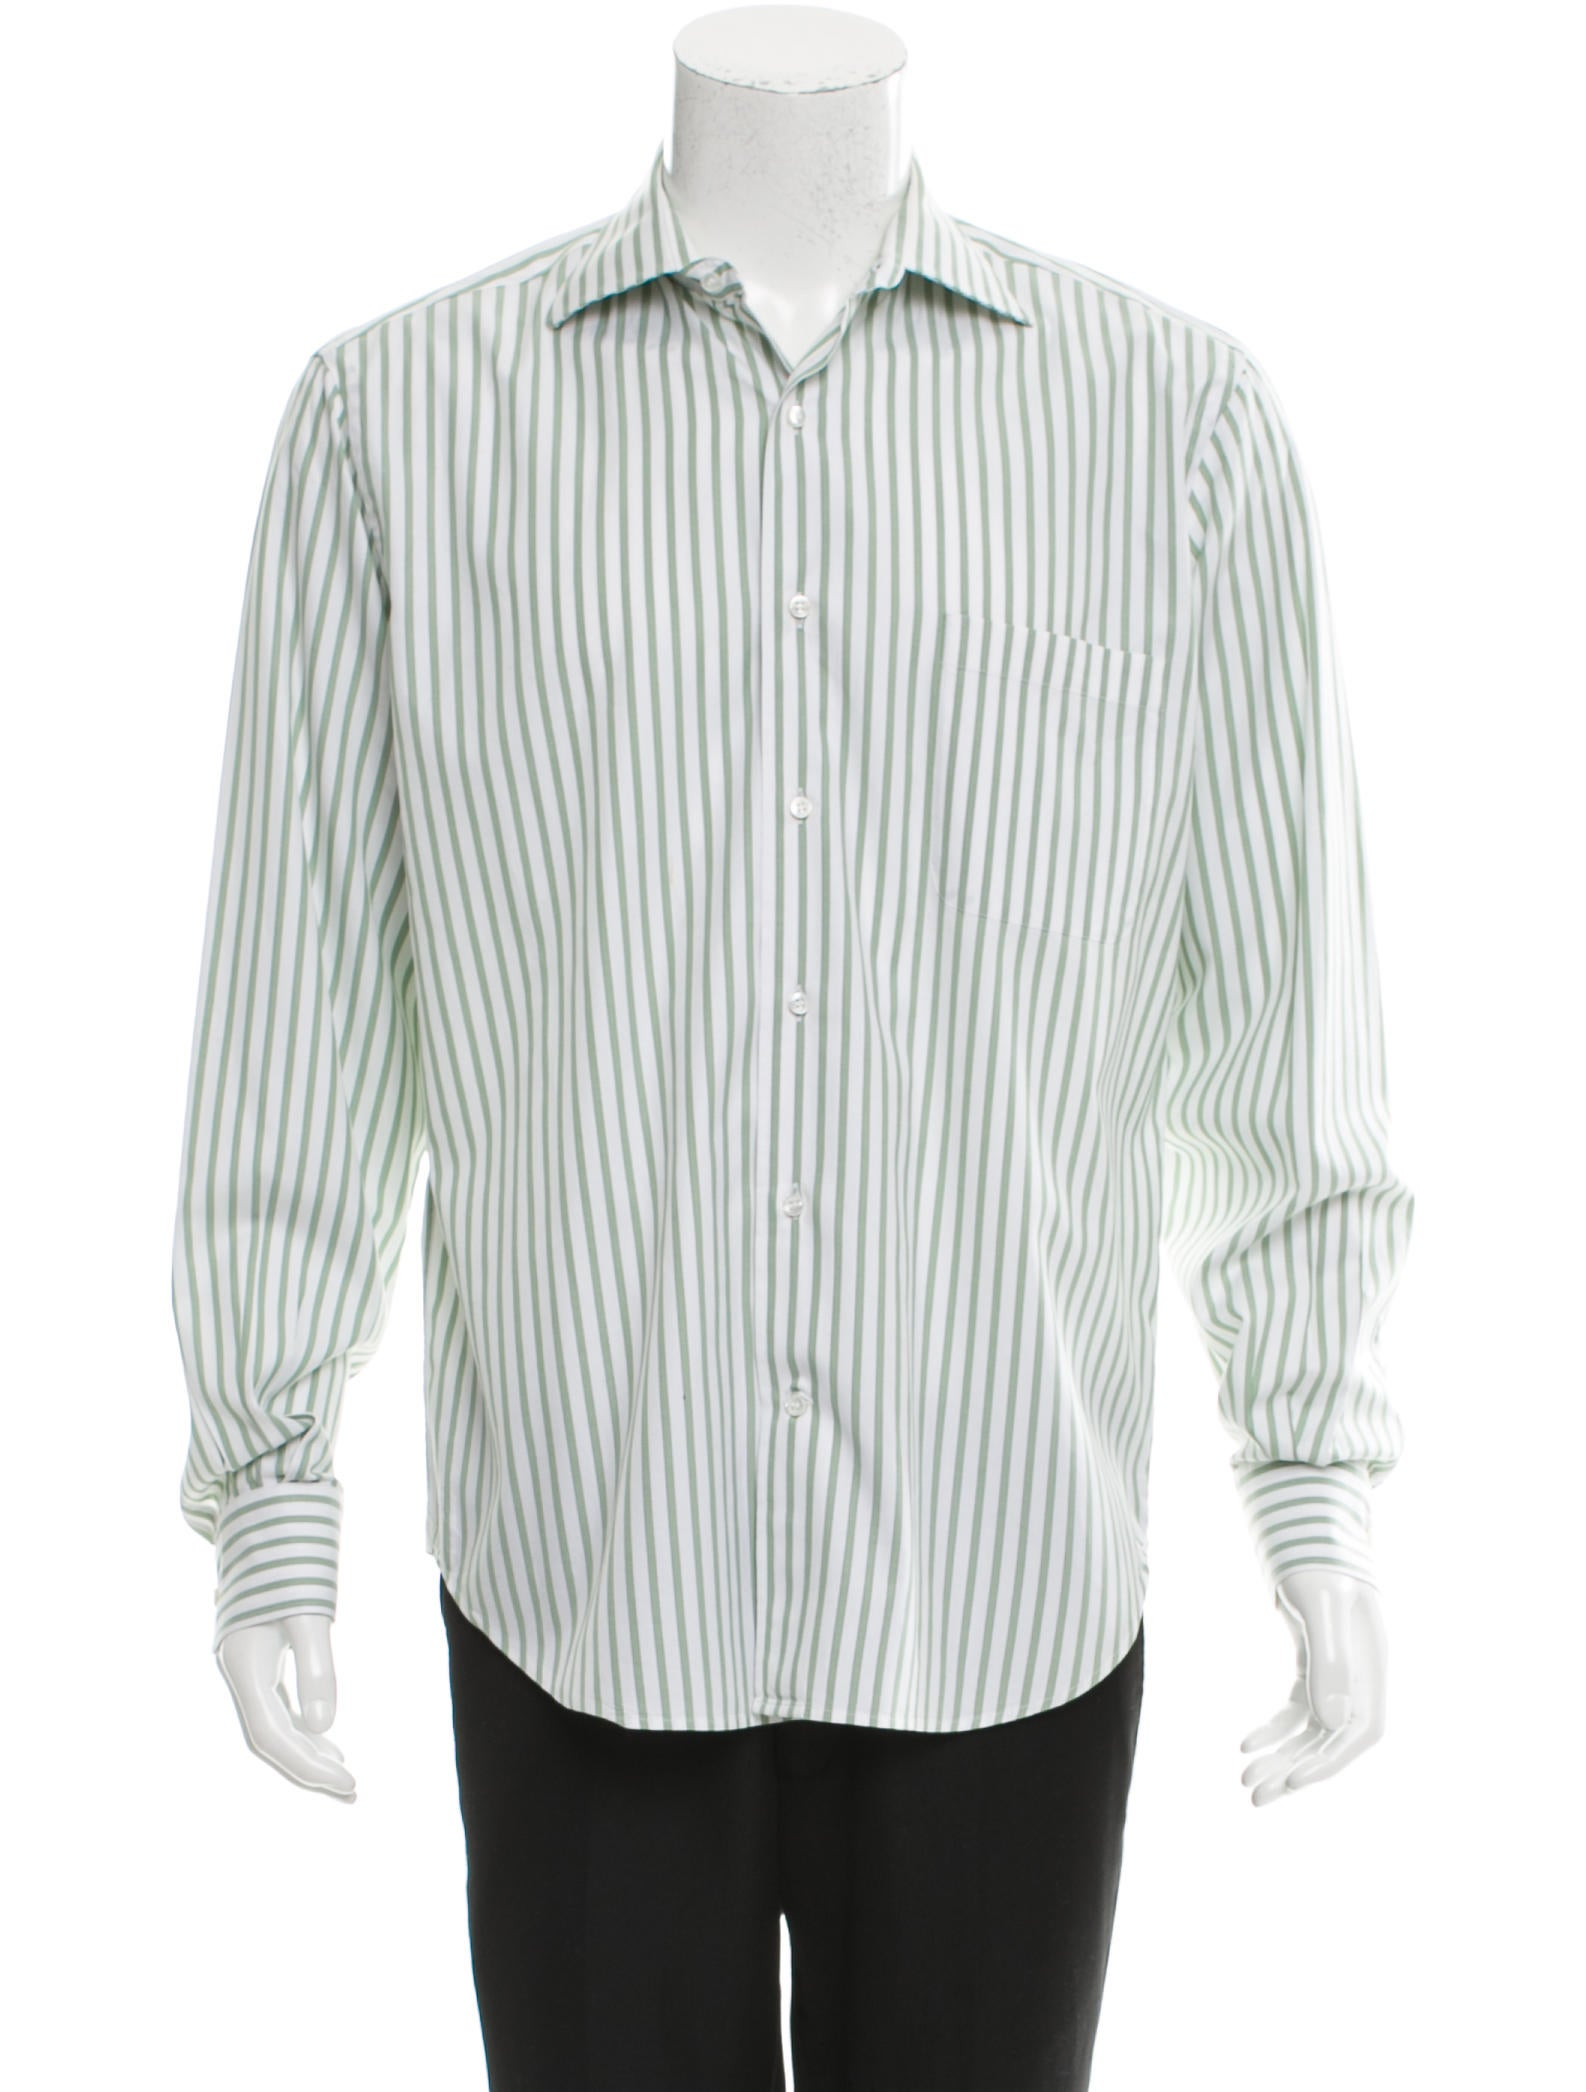 how to wear a striped button up shirt